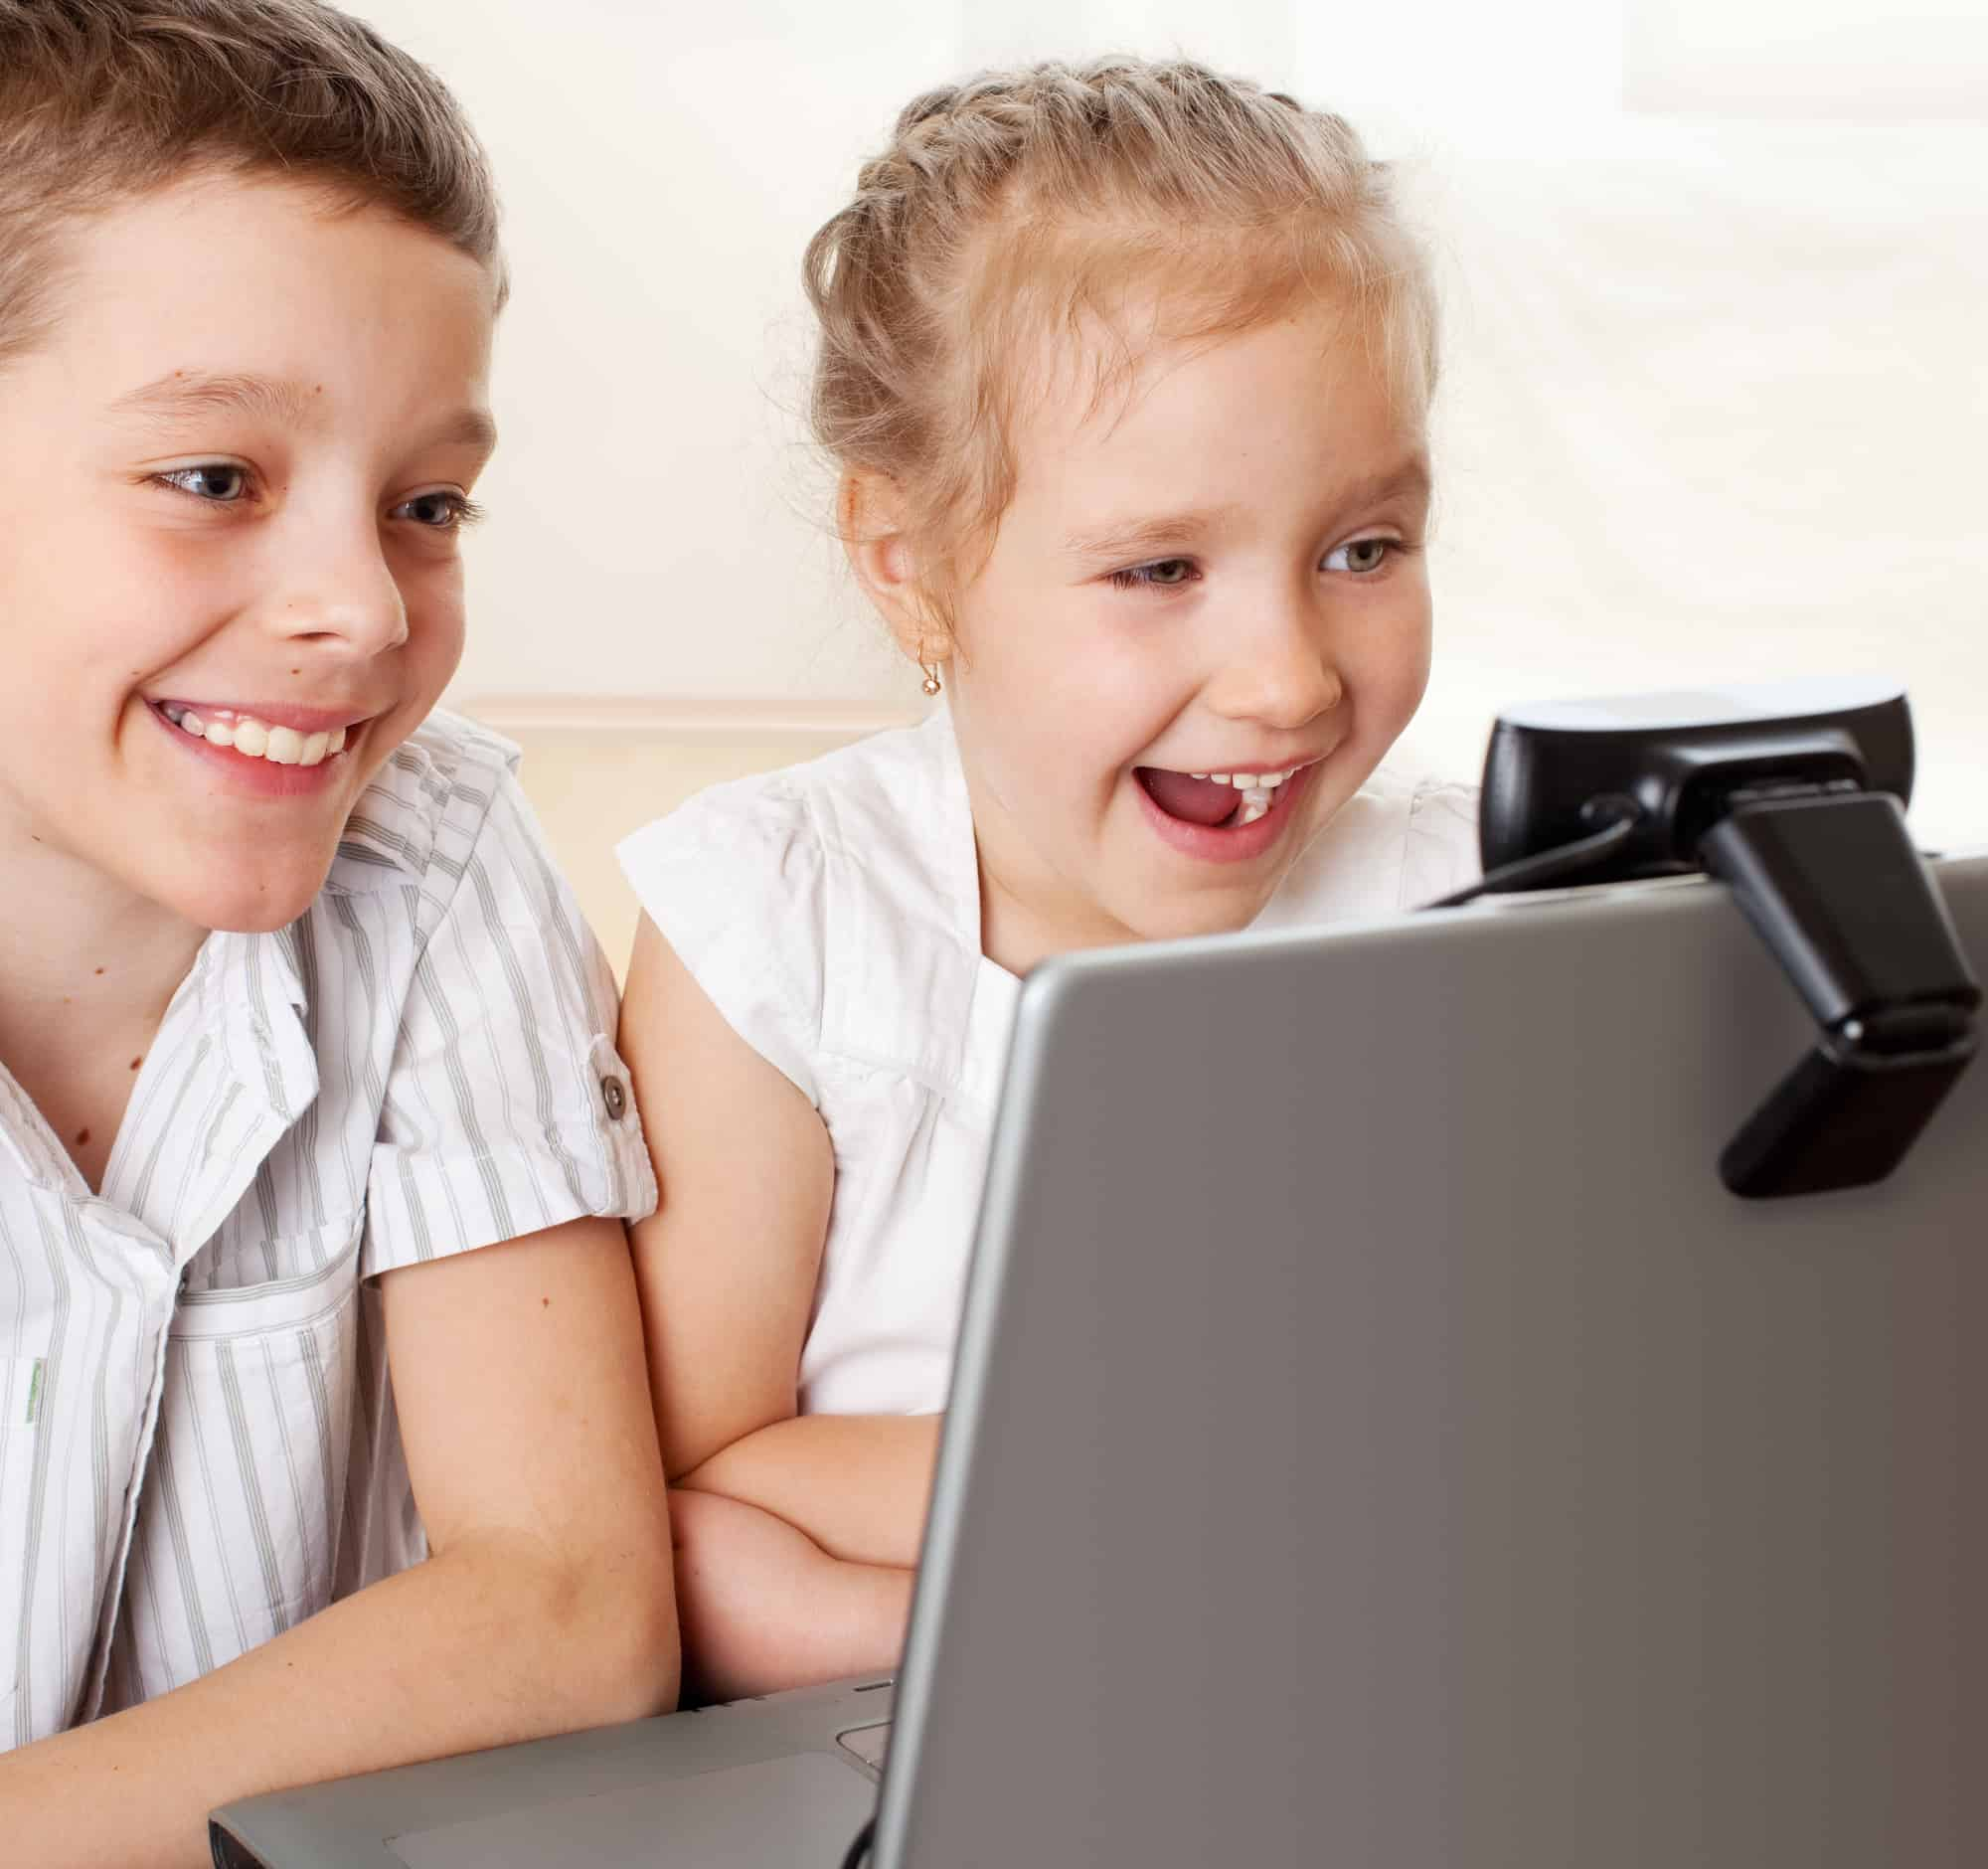 Two children smiling and laughing on the computer as they face time.